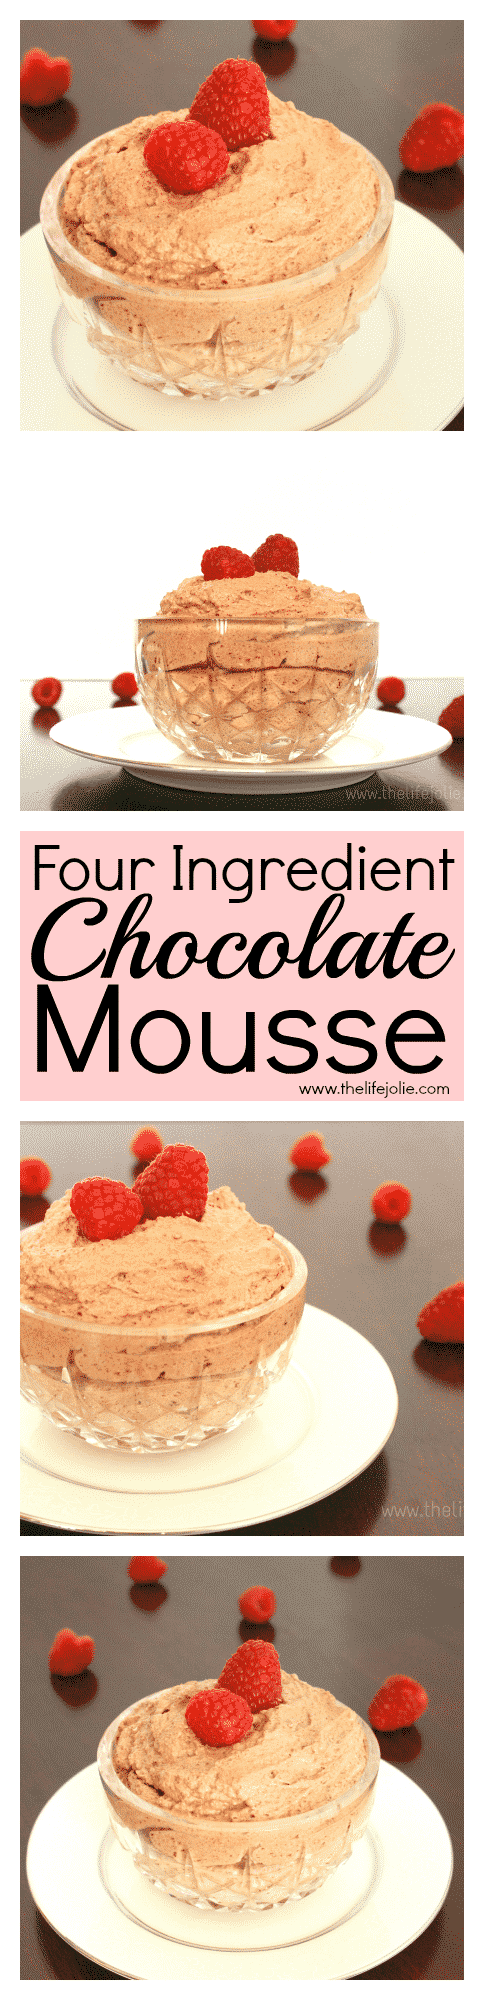 This Four Ingredent Chocolate Mousse is so simple and easy to make. It's light and fluffy but the flavor is rich and decadent. After I made it, everyone that tasted it keeps requesting it again.